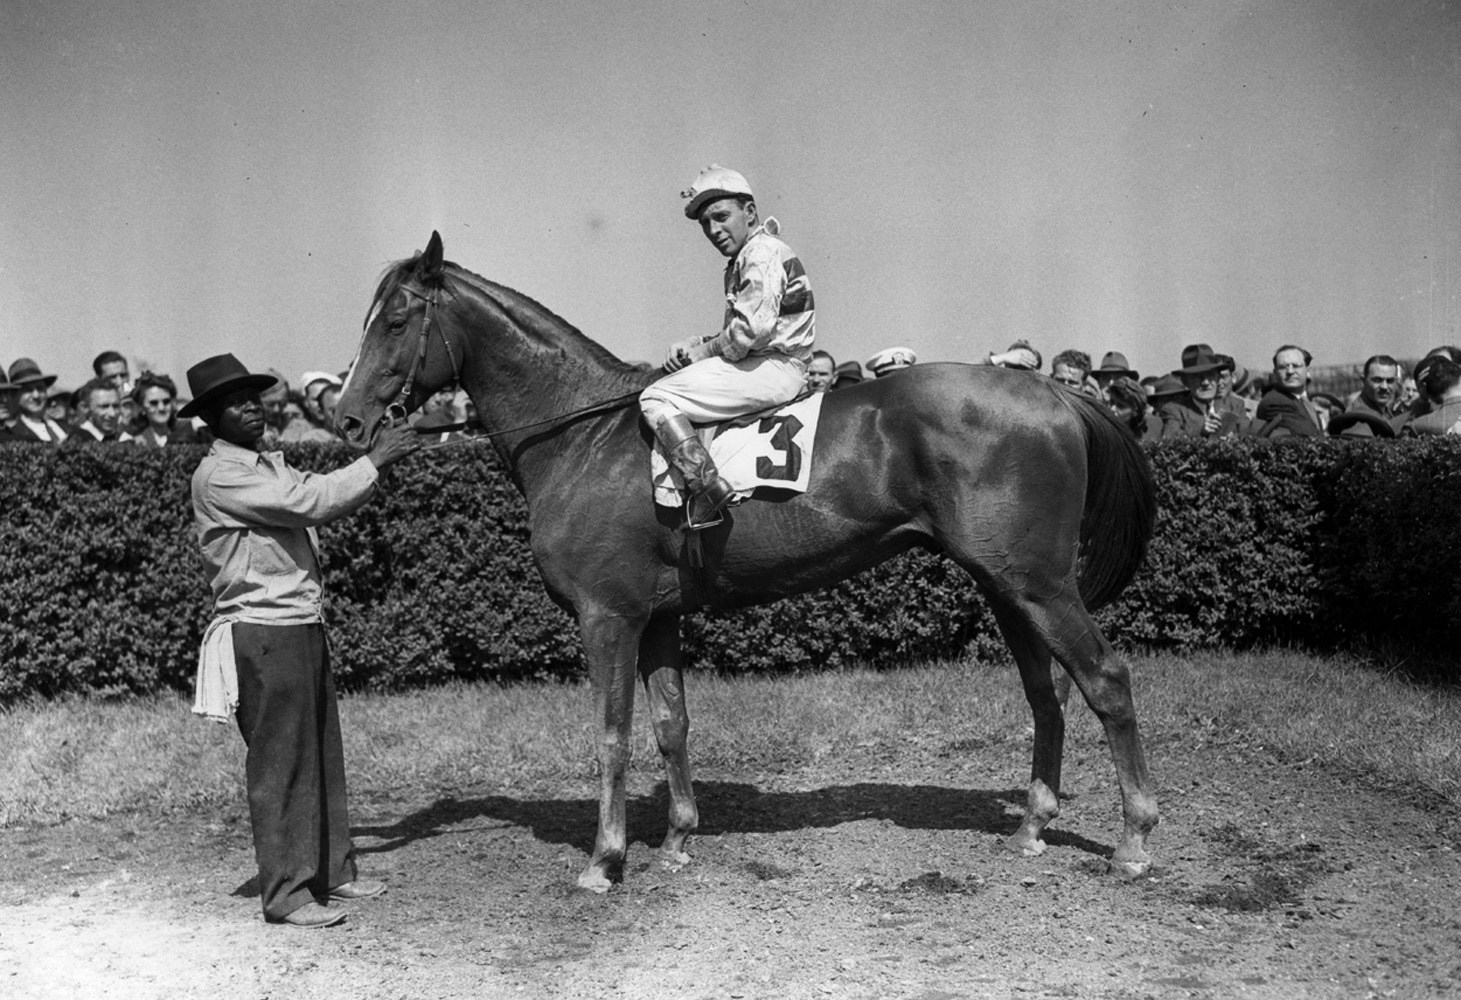 Stymie (John Adams up) in the winner's circle for a handicap event at Jamaica, May 1945 (Keeneland Library Morgan Collection/Museum Collection)